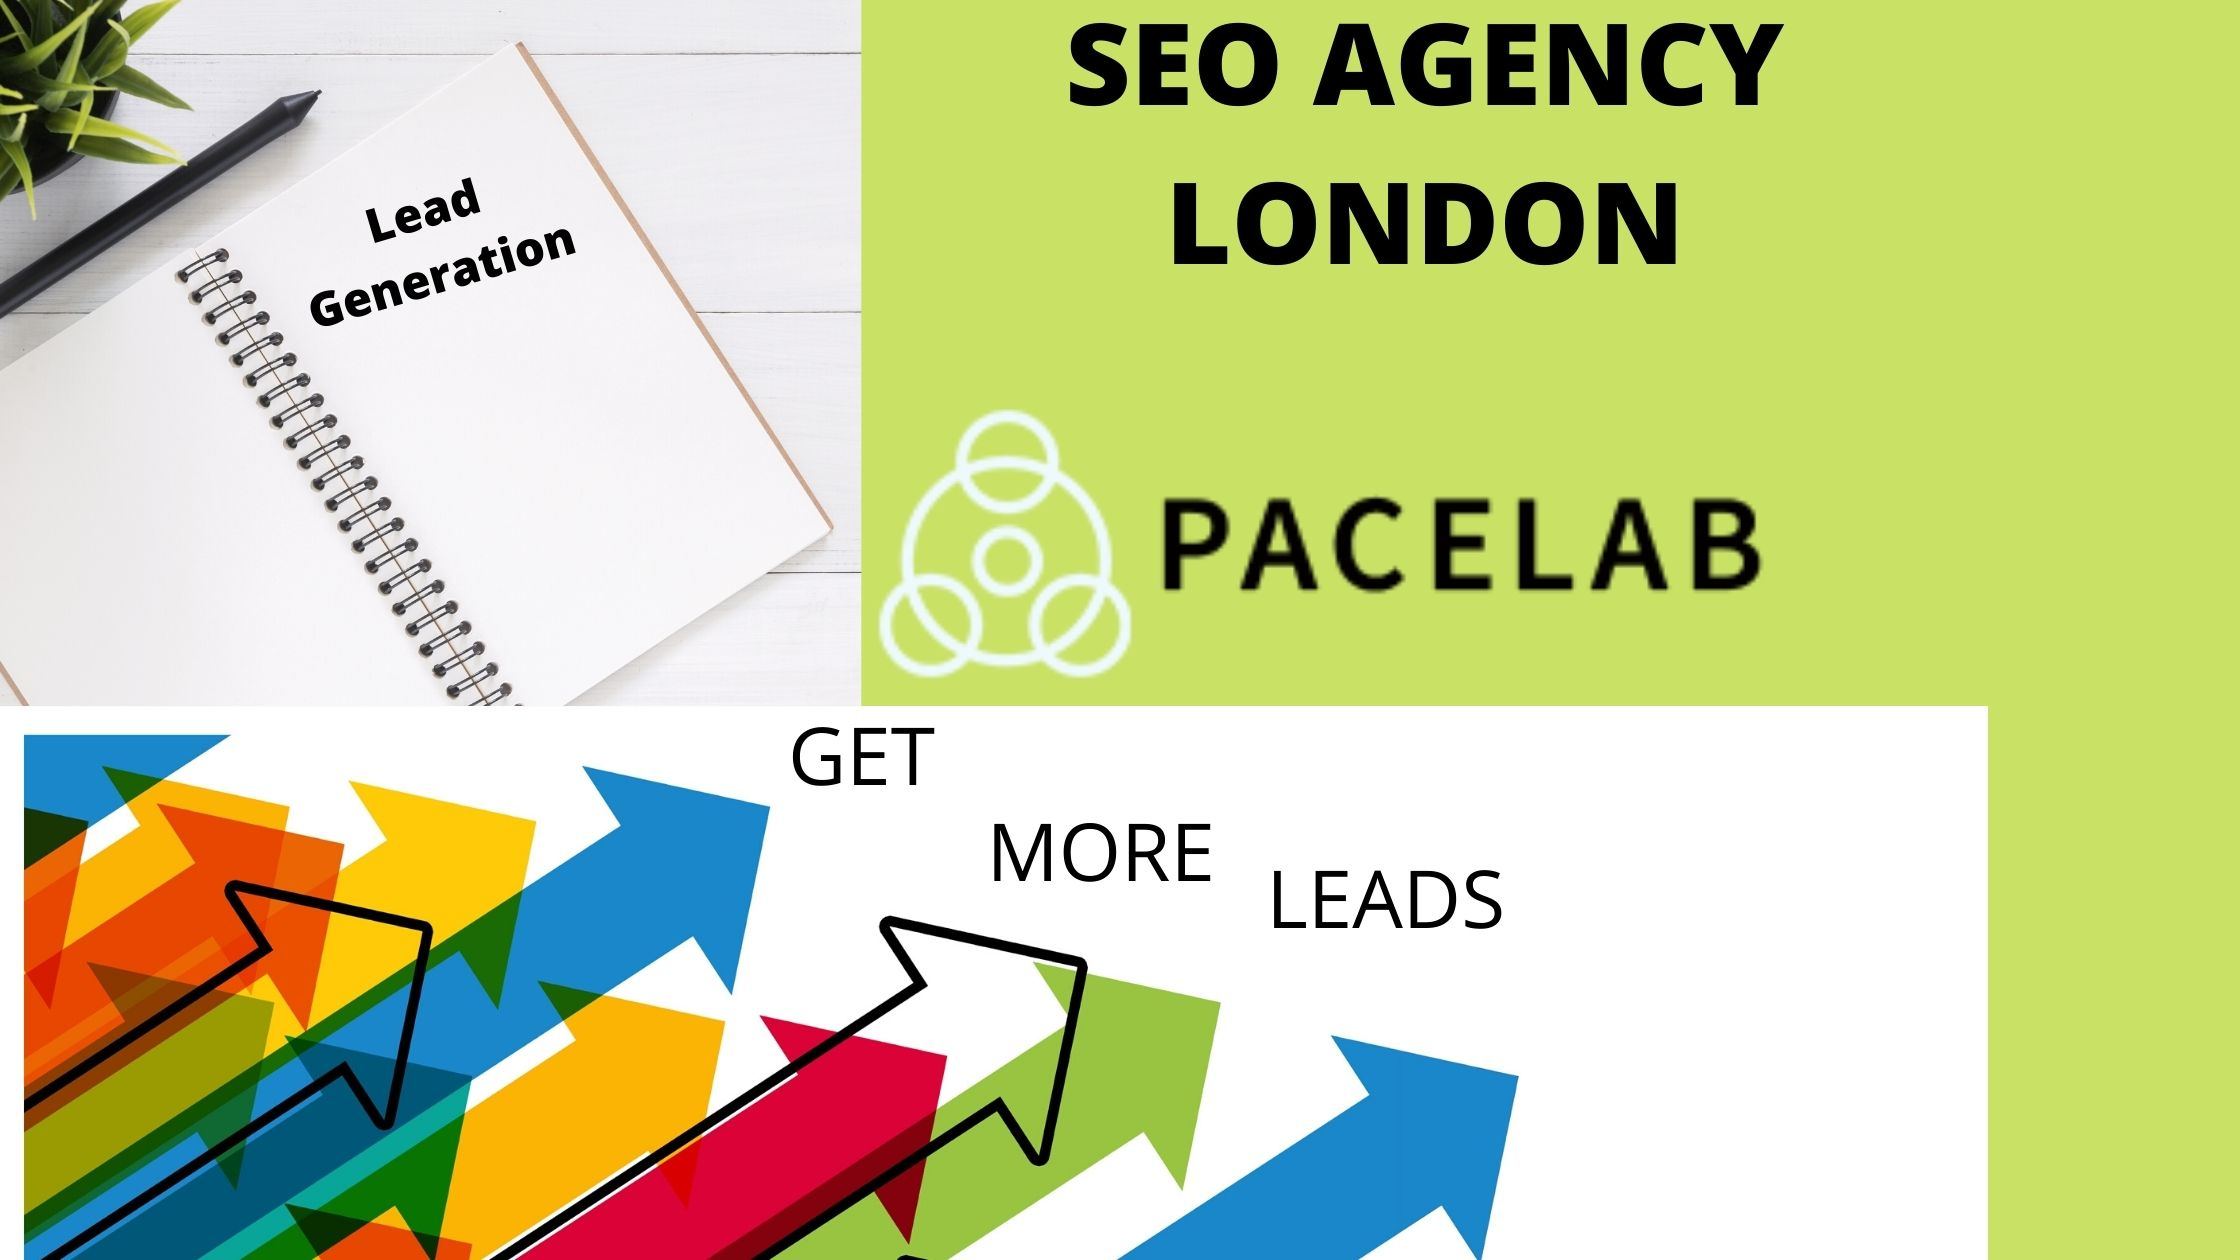 Lead Generation- Pacelab SEO Agency London